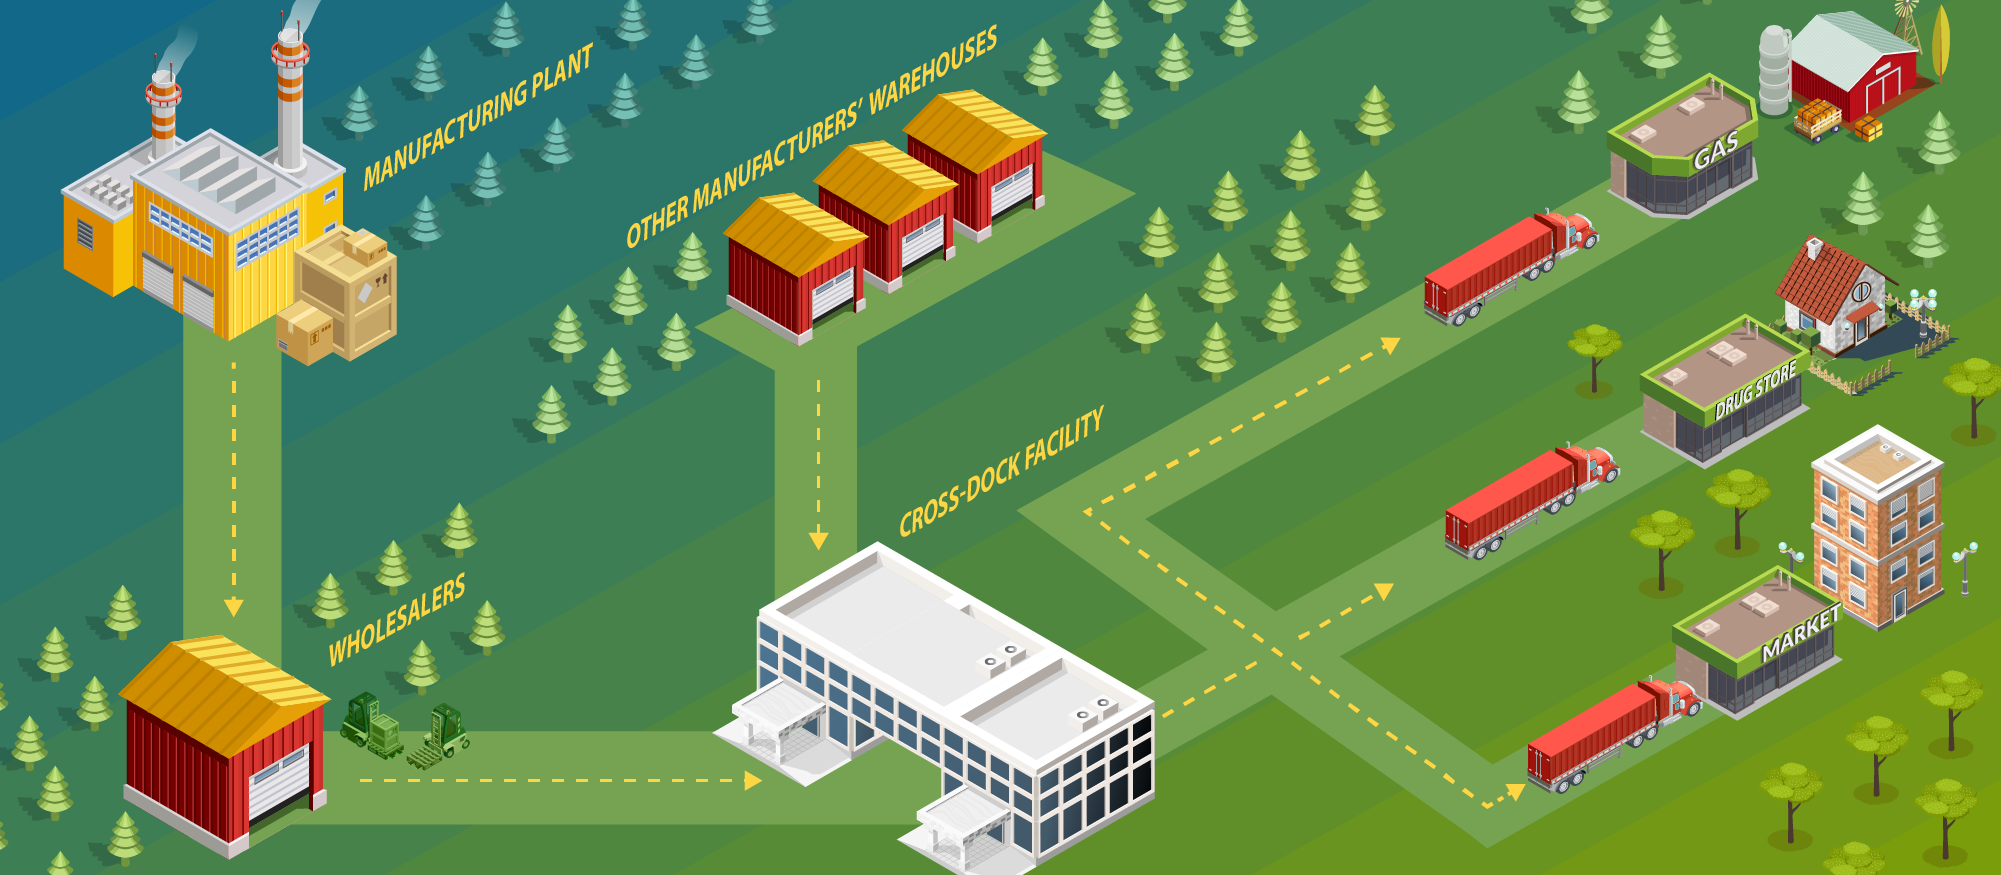 Distribution illustration: From manufacturing plant to Wholesalers, From other manufactucers warehouses to Cross-Dock facility to gas stations, drug stores and markets